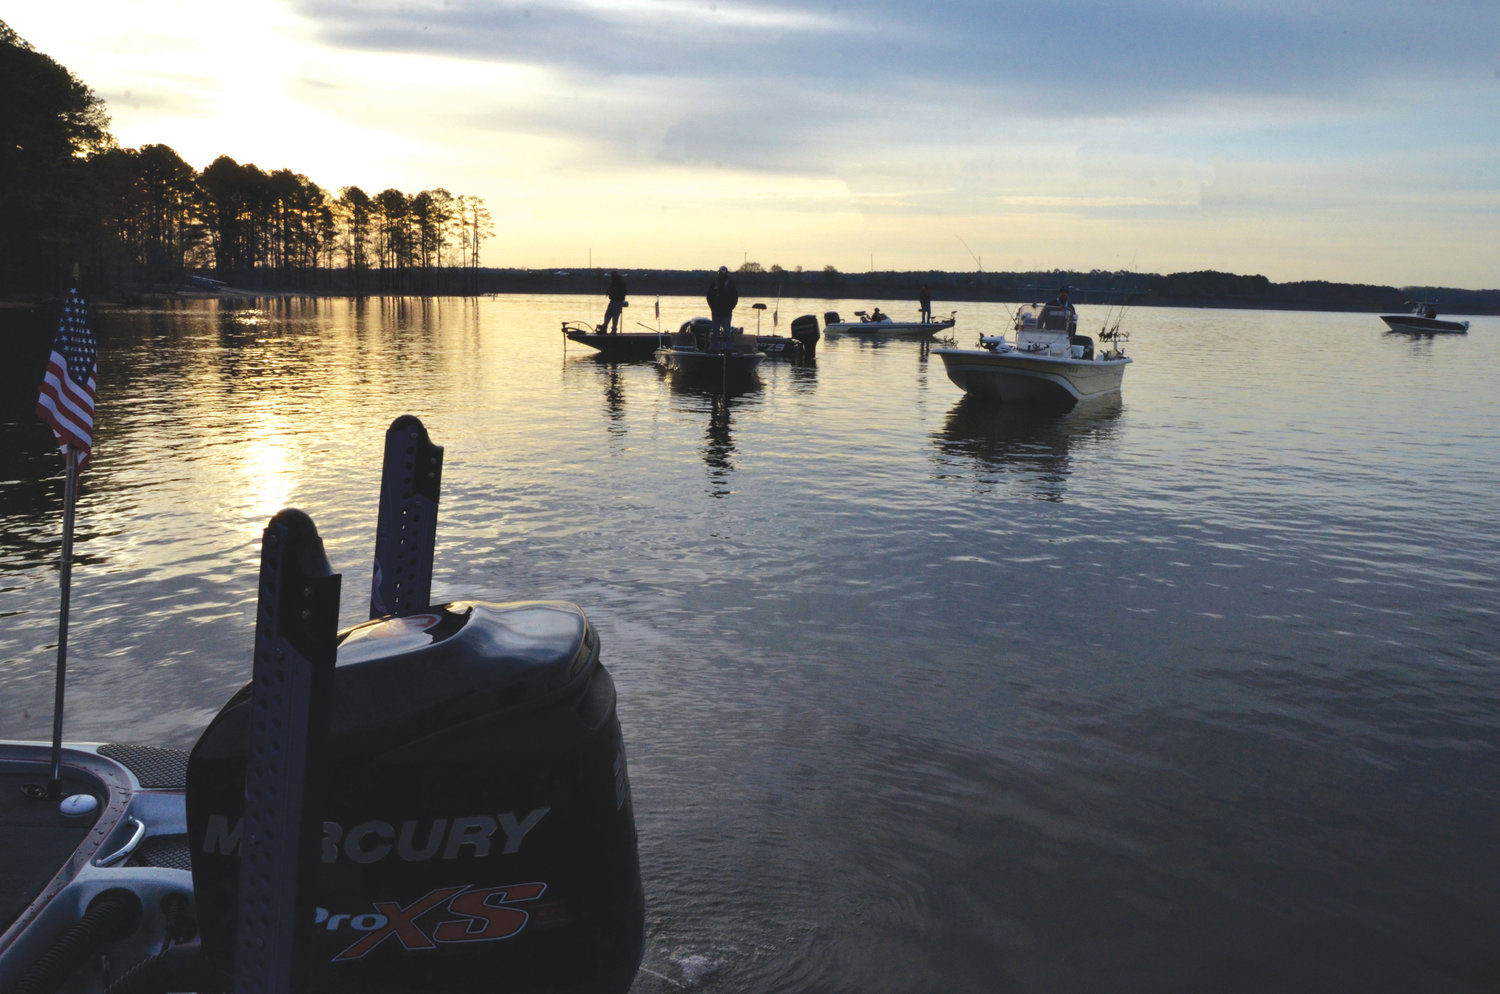 Fishermen make their way onto Jordan Lake as part in the annual Jordan Lake Top Shelf Fishin' Festival, sponsored by Operation North State last Thursday. The festival is an event for disabled veterans and others who have served in the armed forces.